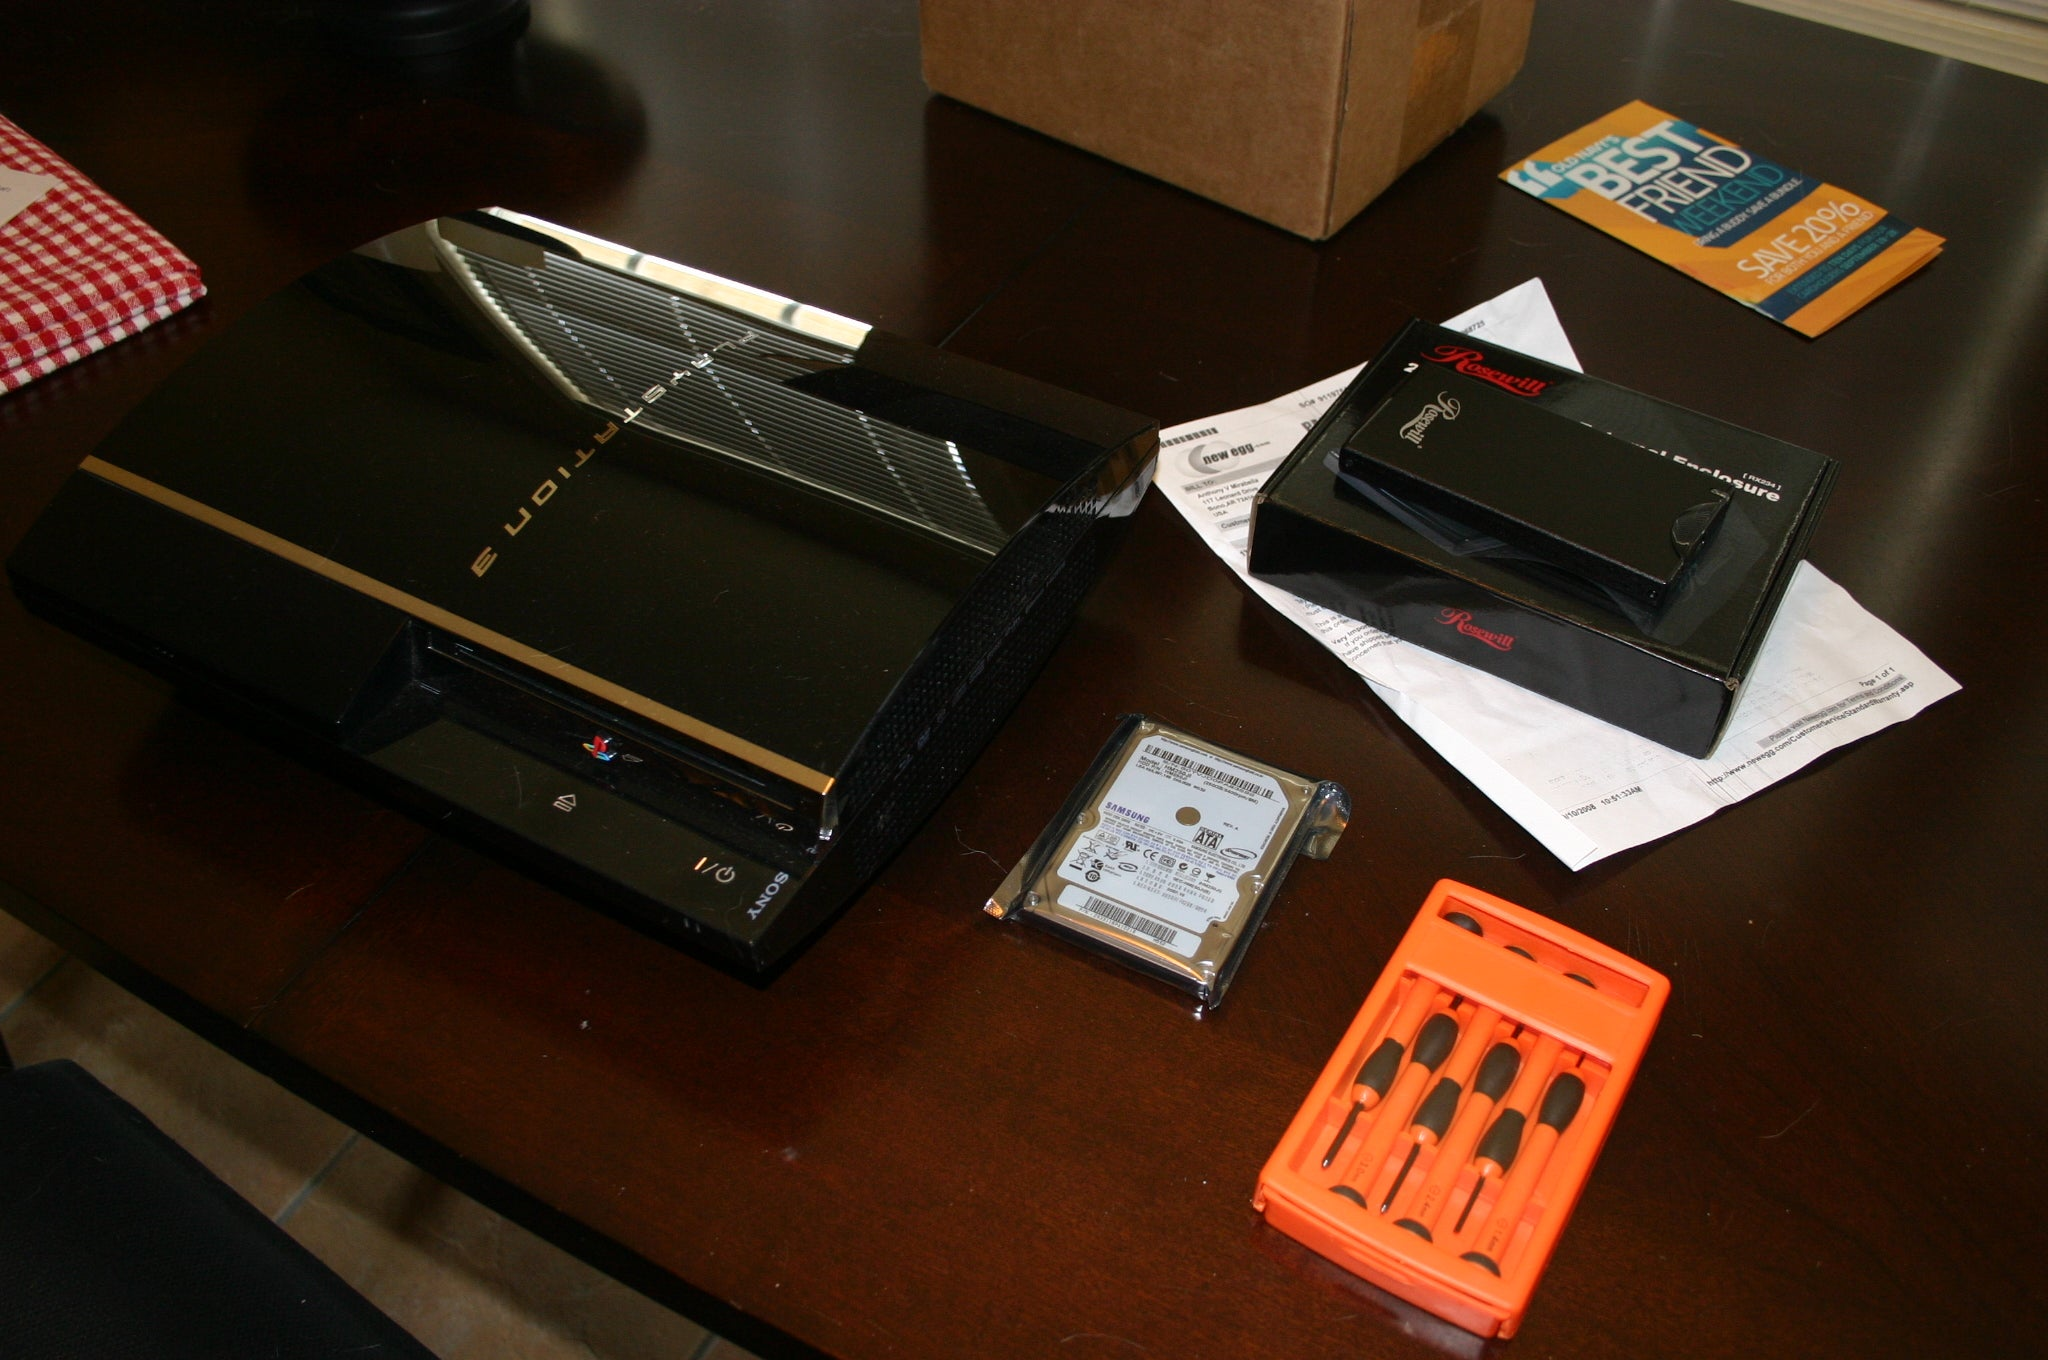 Upgrade Your Ps3s Hard Drive 6 Steps How To Repair Plasystation 3 Laser